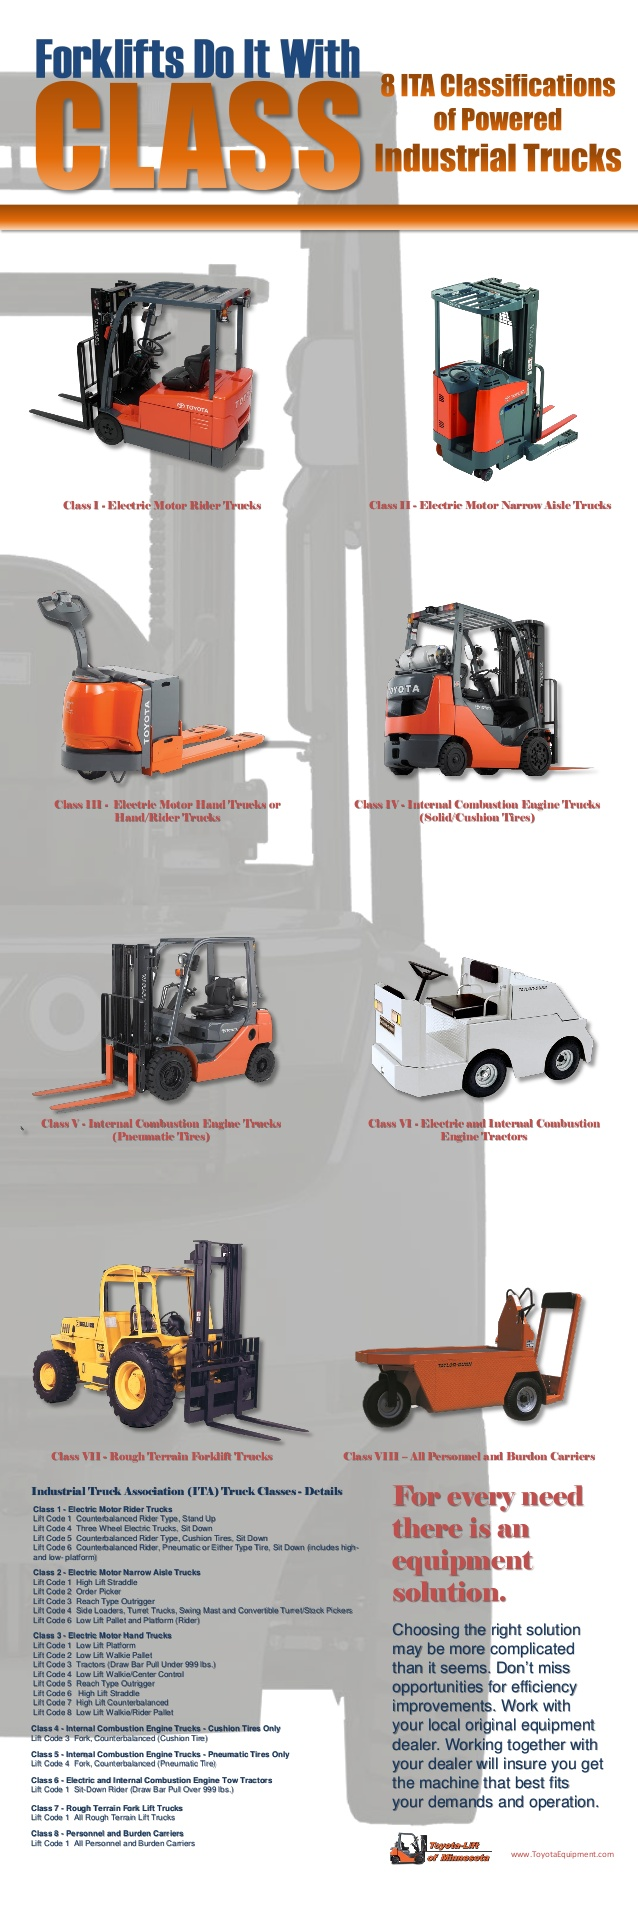 Forklift ita equipment classifications material handling n more forklift ita equipment classifications 1betcityfo Choice Image